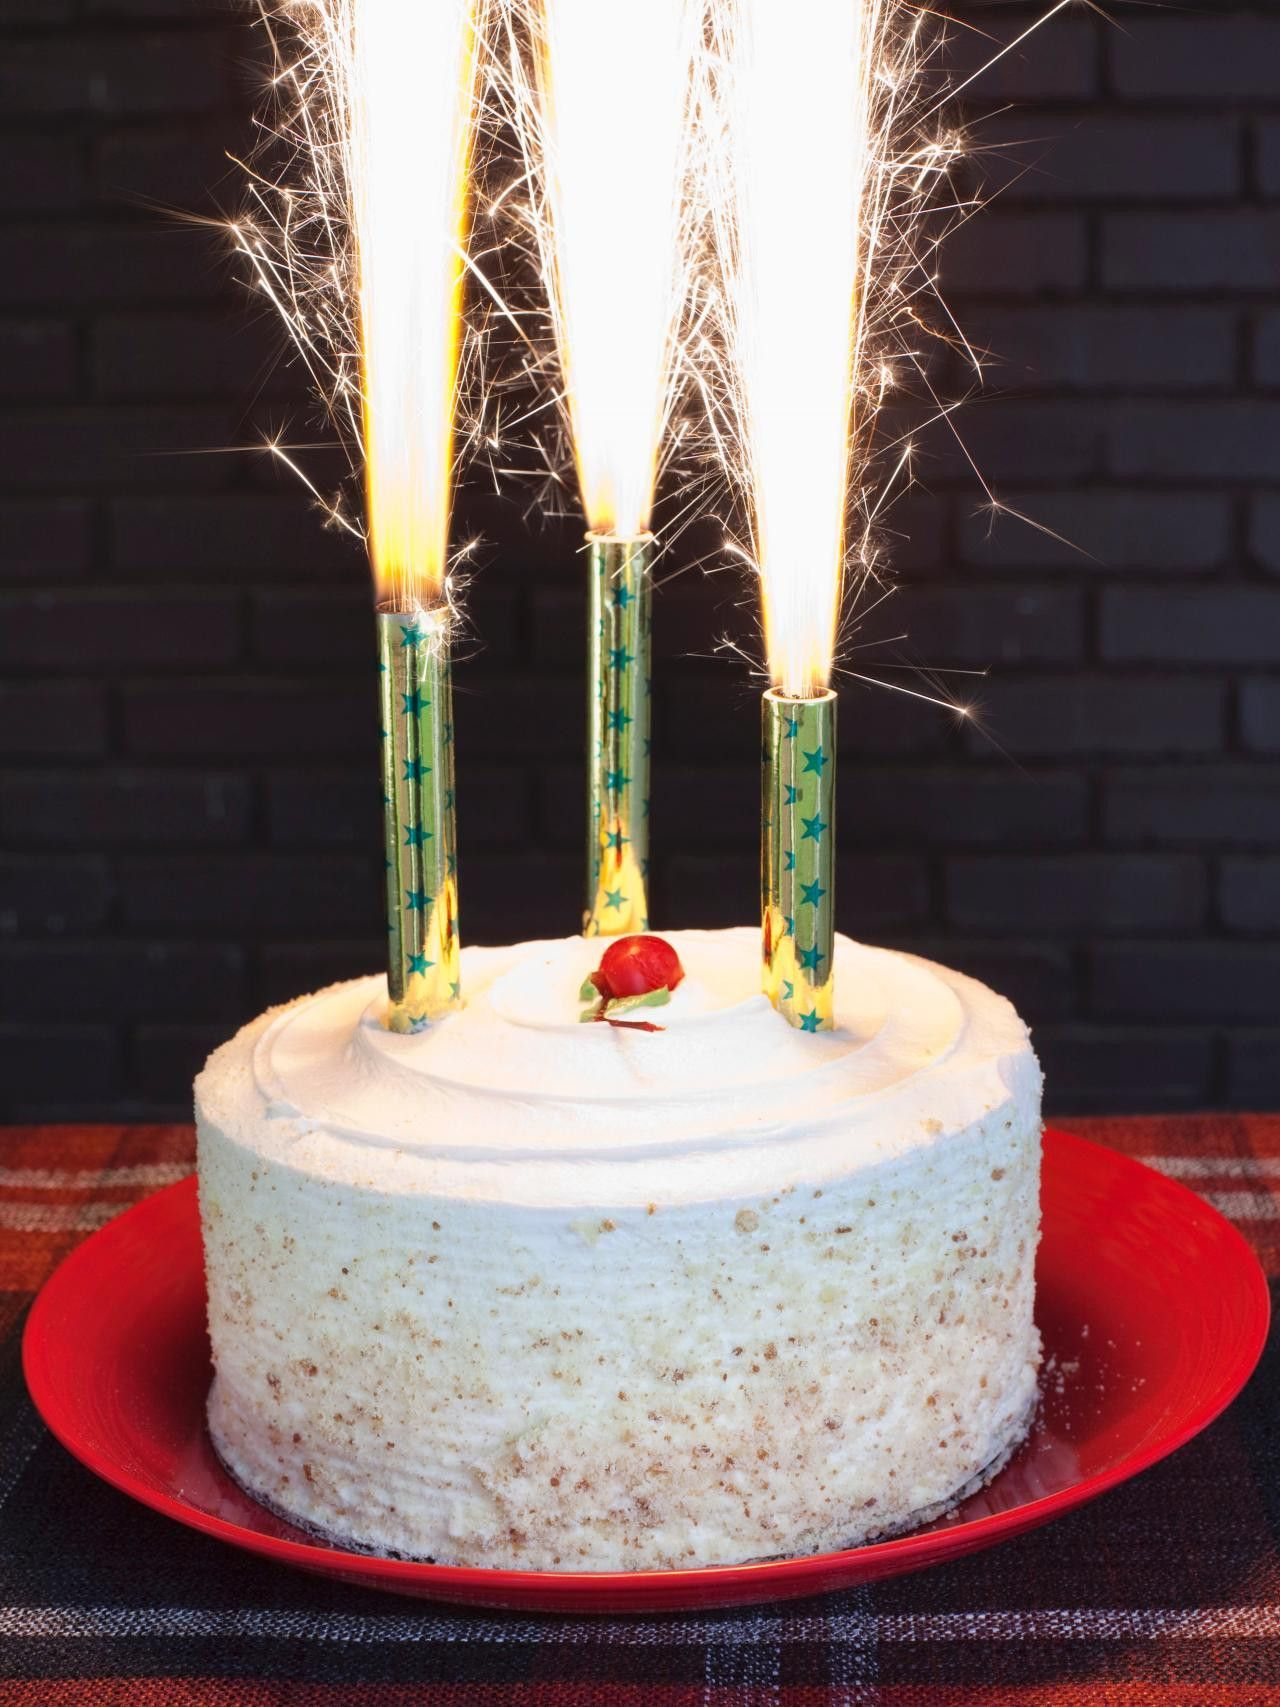 Outstanding Cake Champagne Bottle Sparklers Indoor Safe Large Birthday Candle Funny Birthday Cards Online Elaedamsfinfo